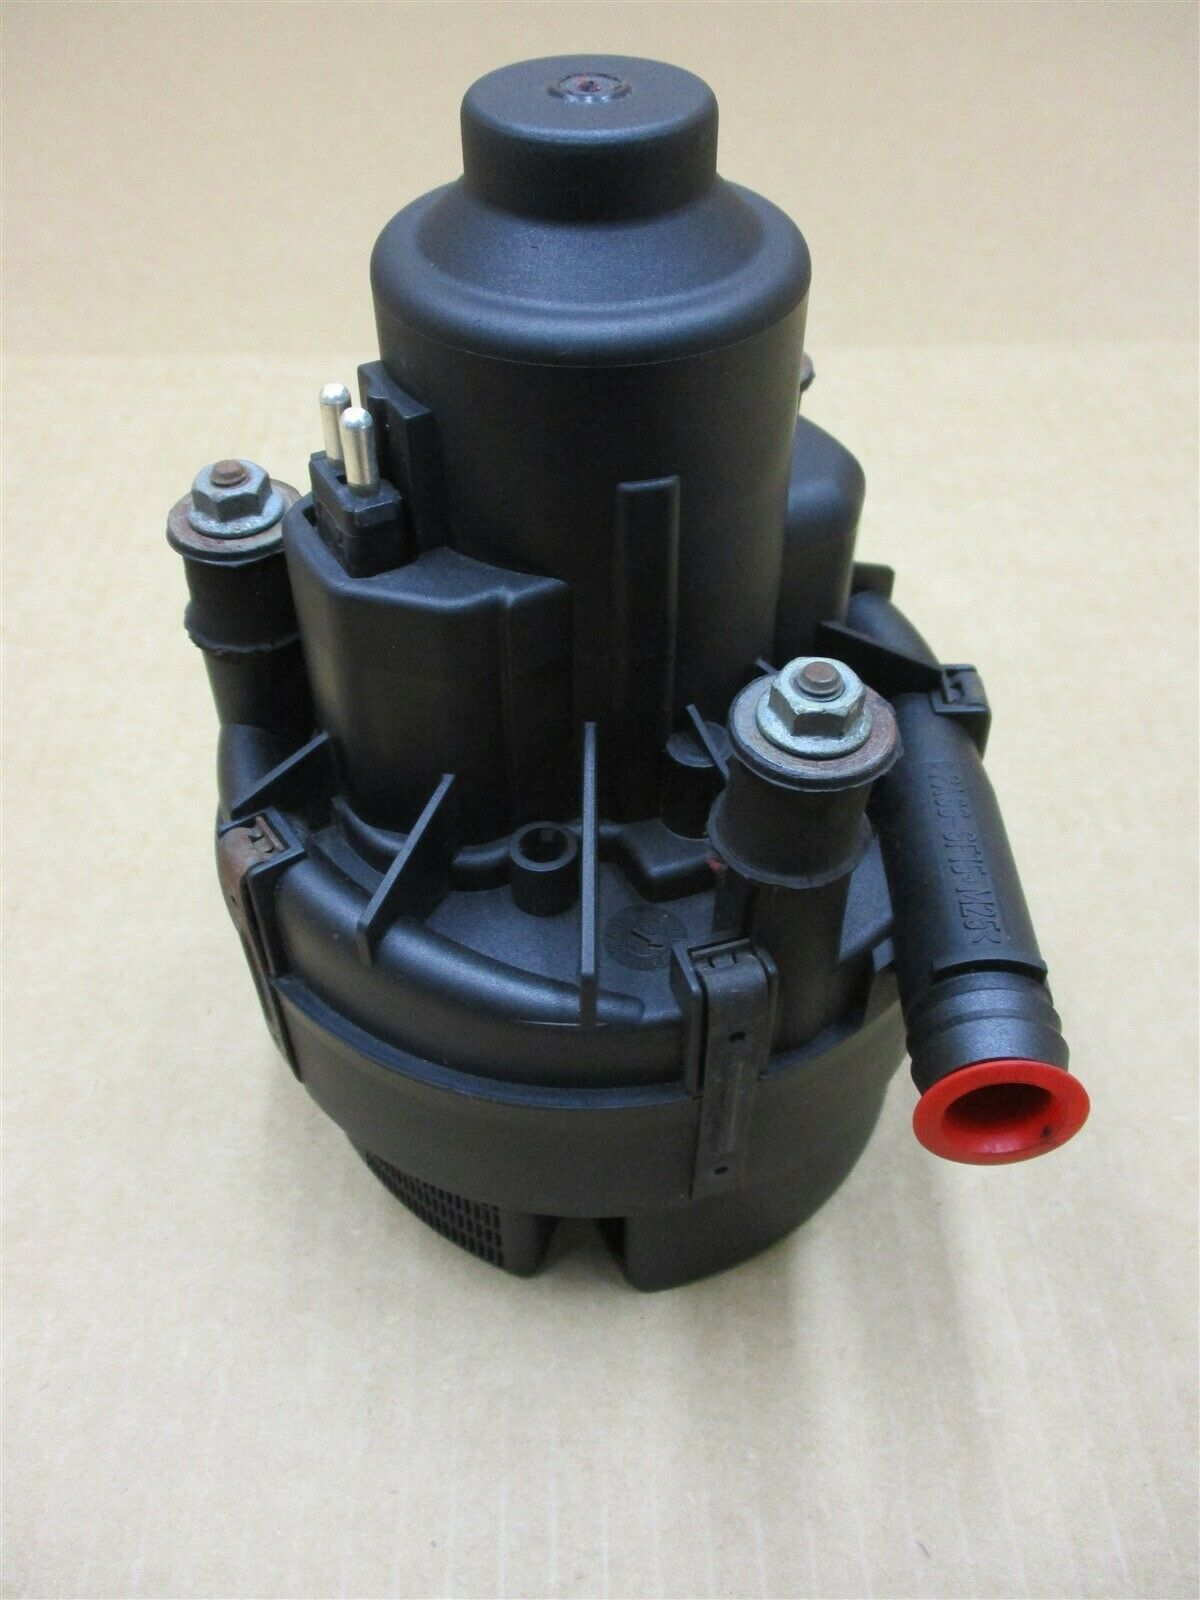 01 Carrera 911 RWD Porsche 996 Coupe BOSCH AIR INJECTION PUMP 99660510400 94,868